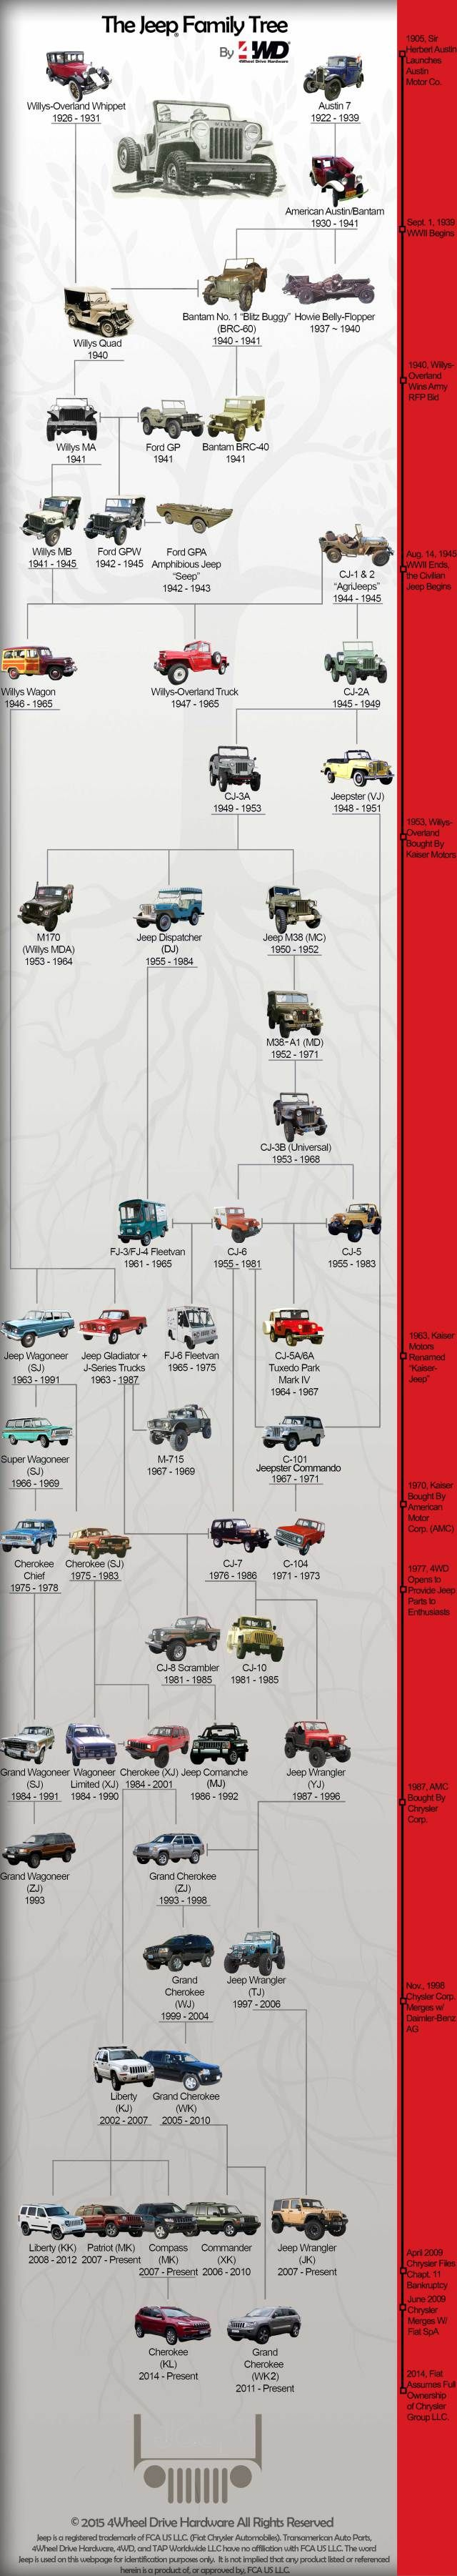 56 best 04 jeep liberty troubleshooting repair images on americas favorite off road family the jeep family tree from 4wd fandeluxe Images